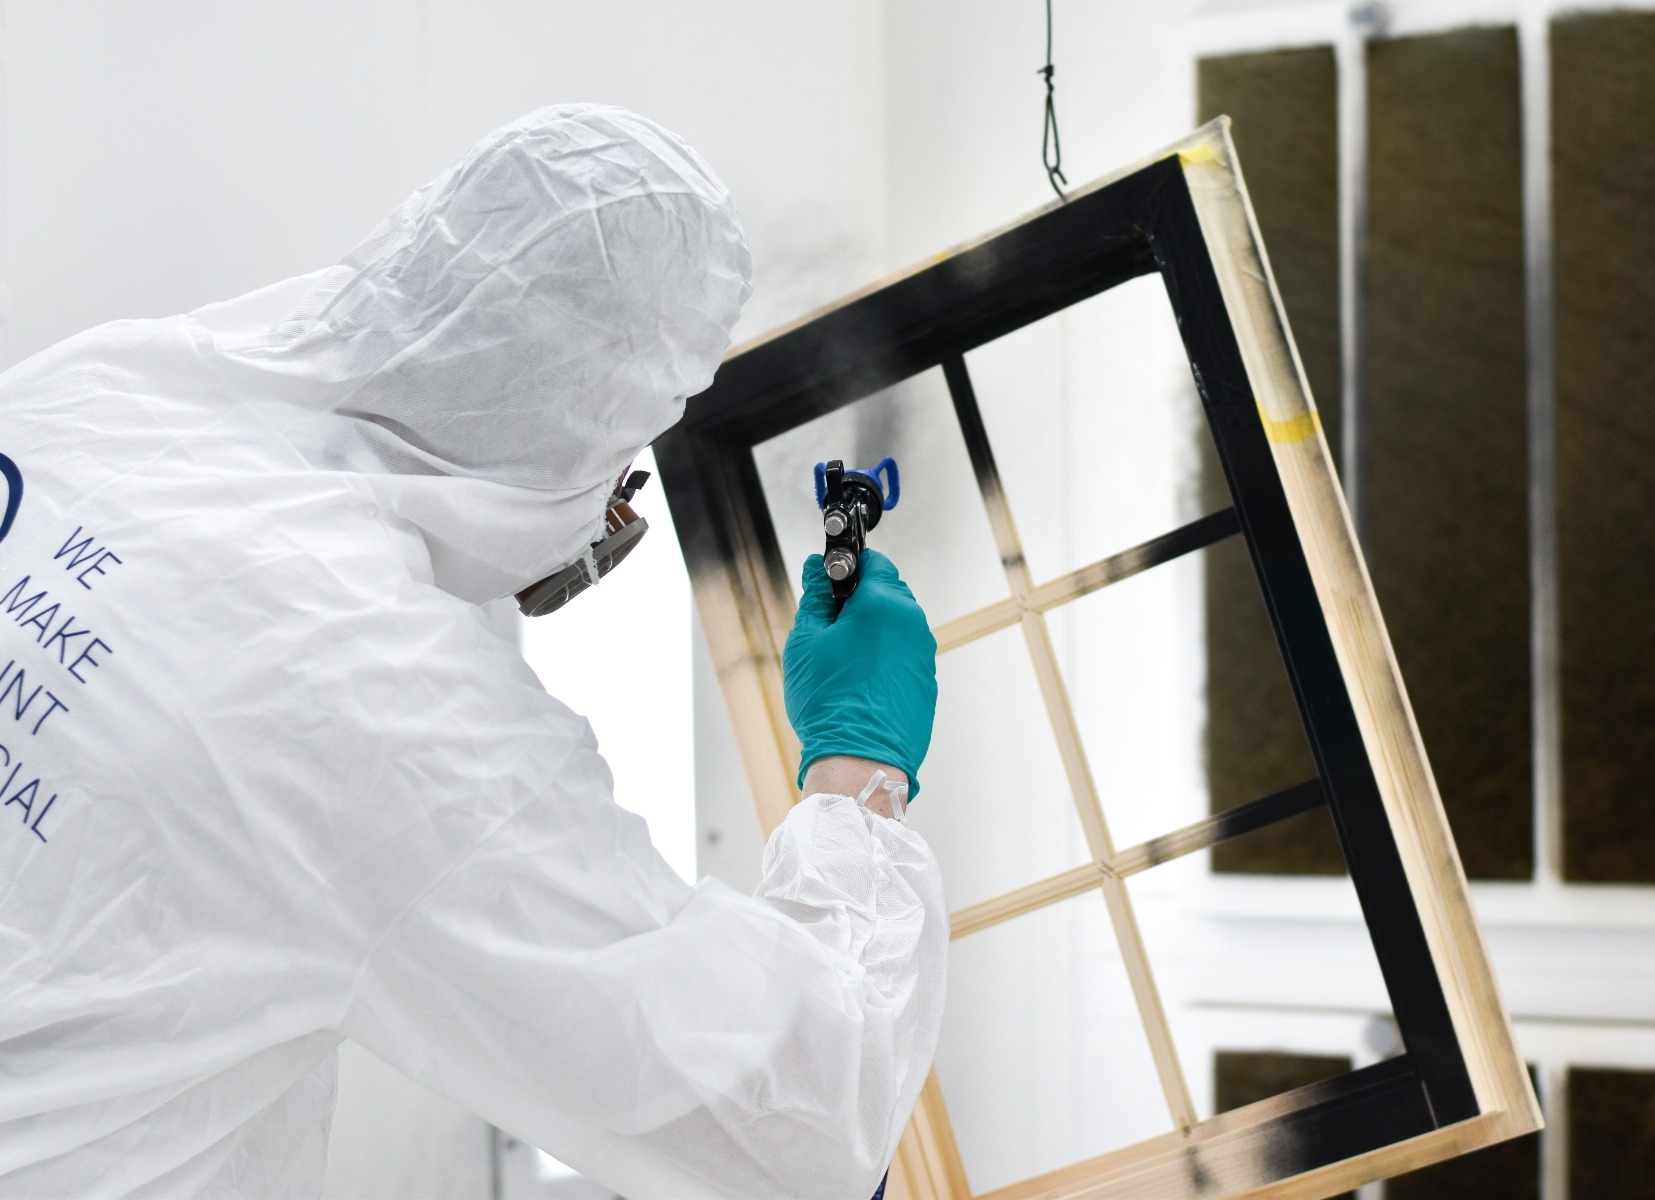 spraypainting a window frame